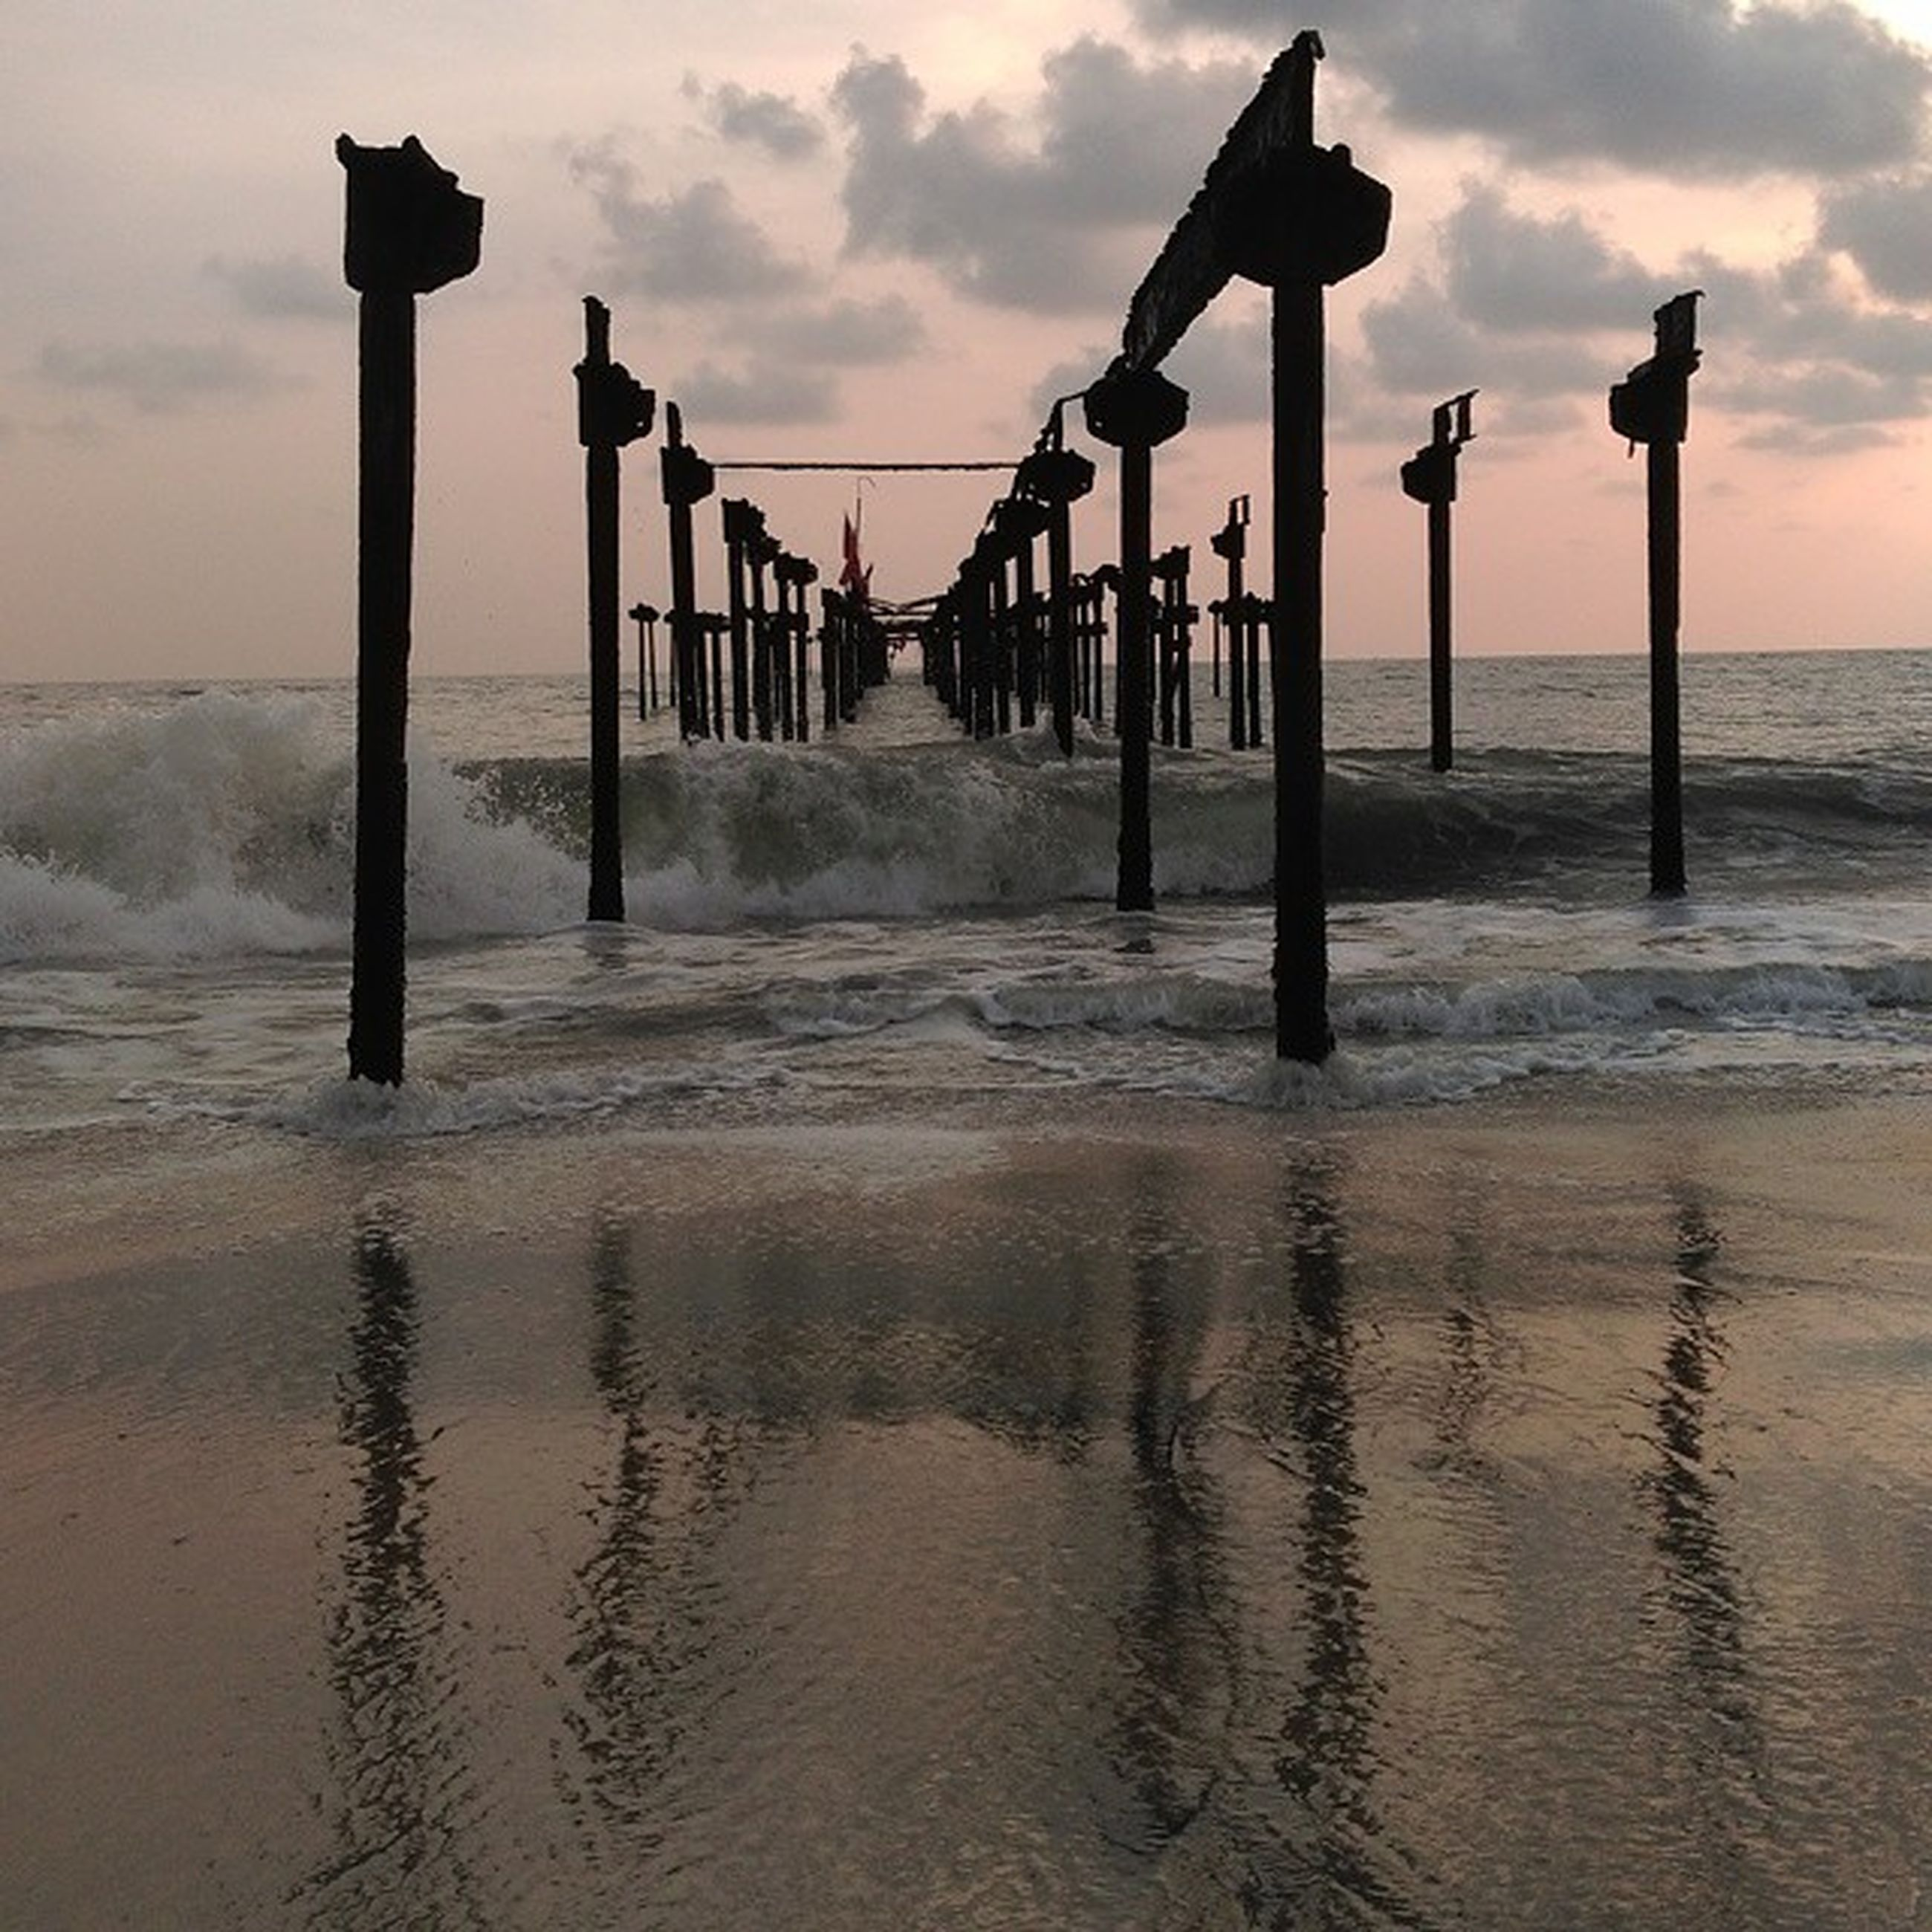 sea, water, sky, beach, sunset, pier, built structure, in a row, cloud - sky, architecture, tranquility, horizon over water, wooden post, shore, scenics, tranquil scene, beauty in nature, nature, architectural column, sand